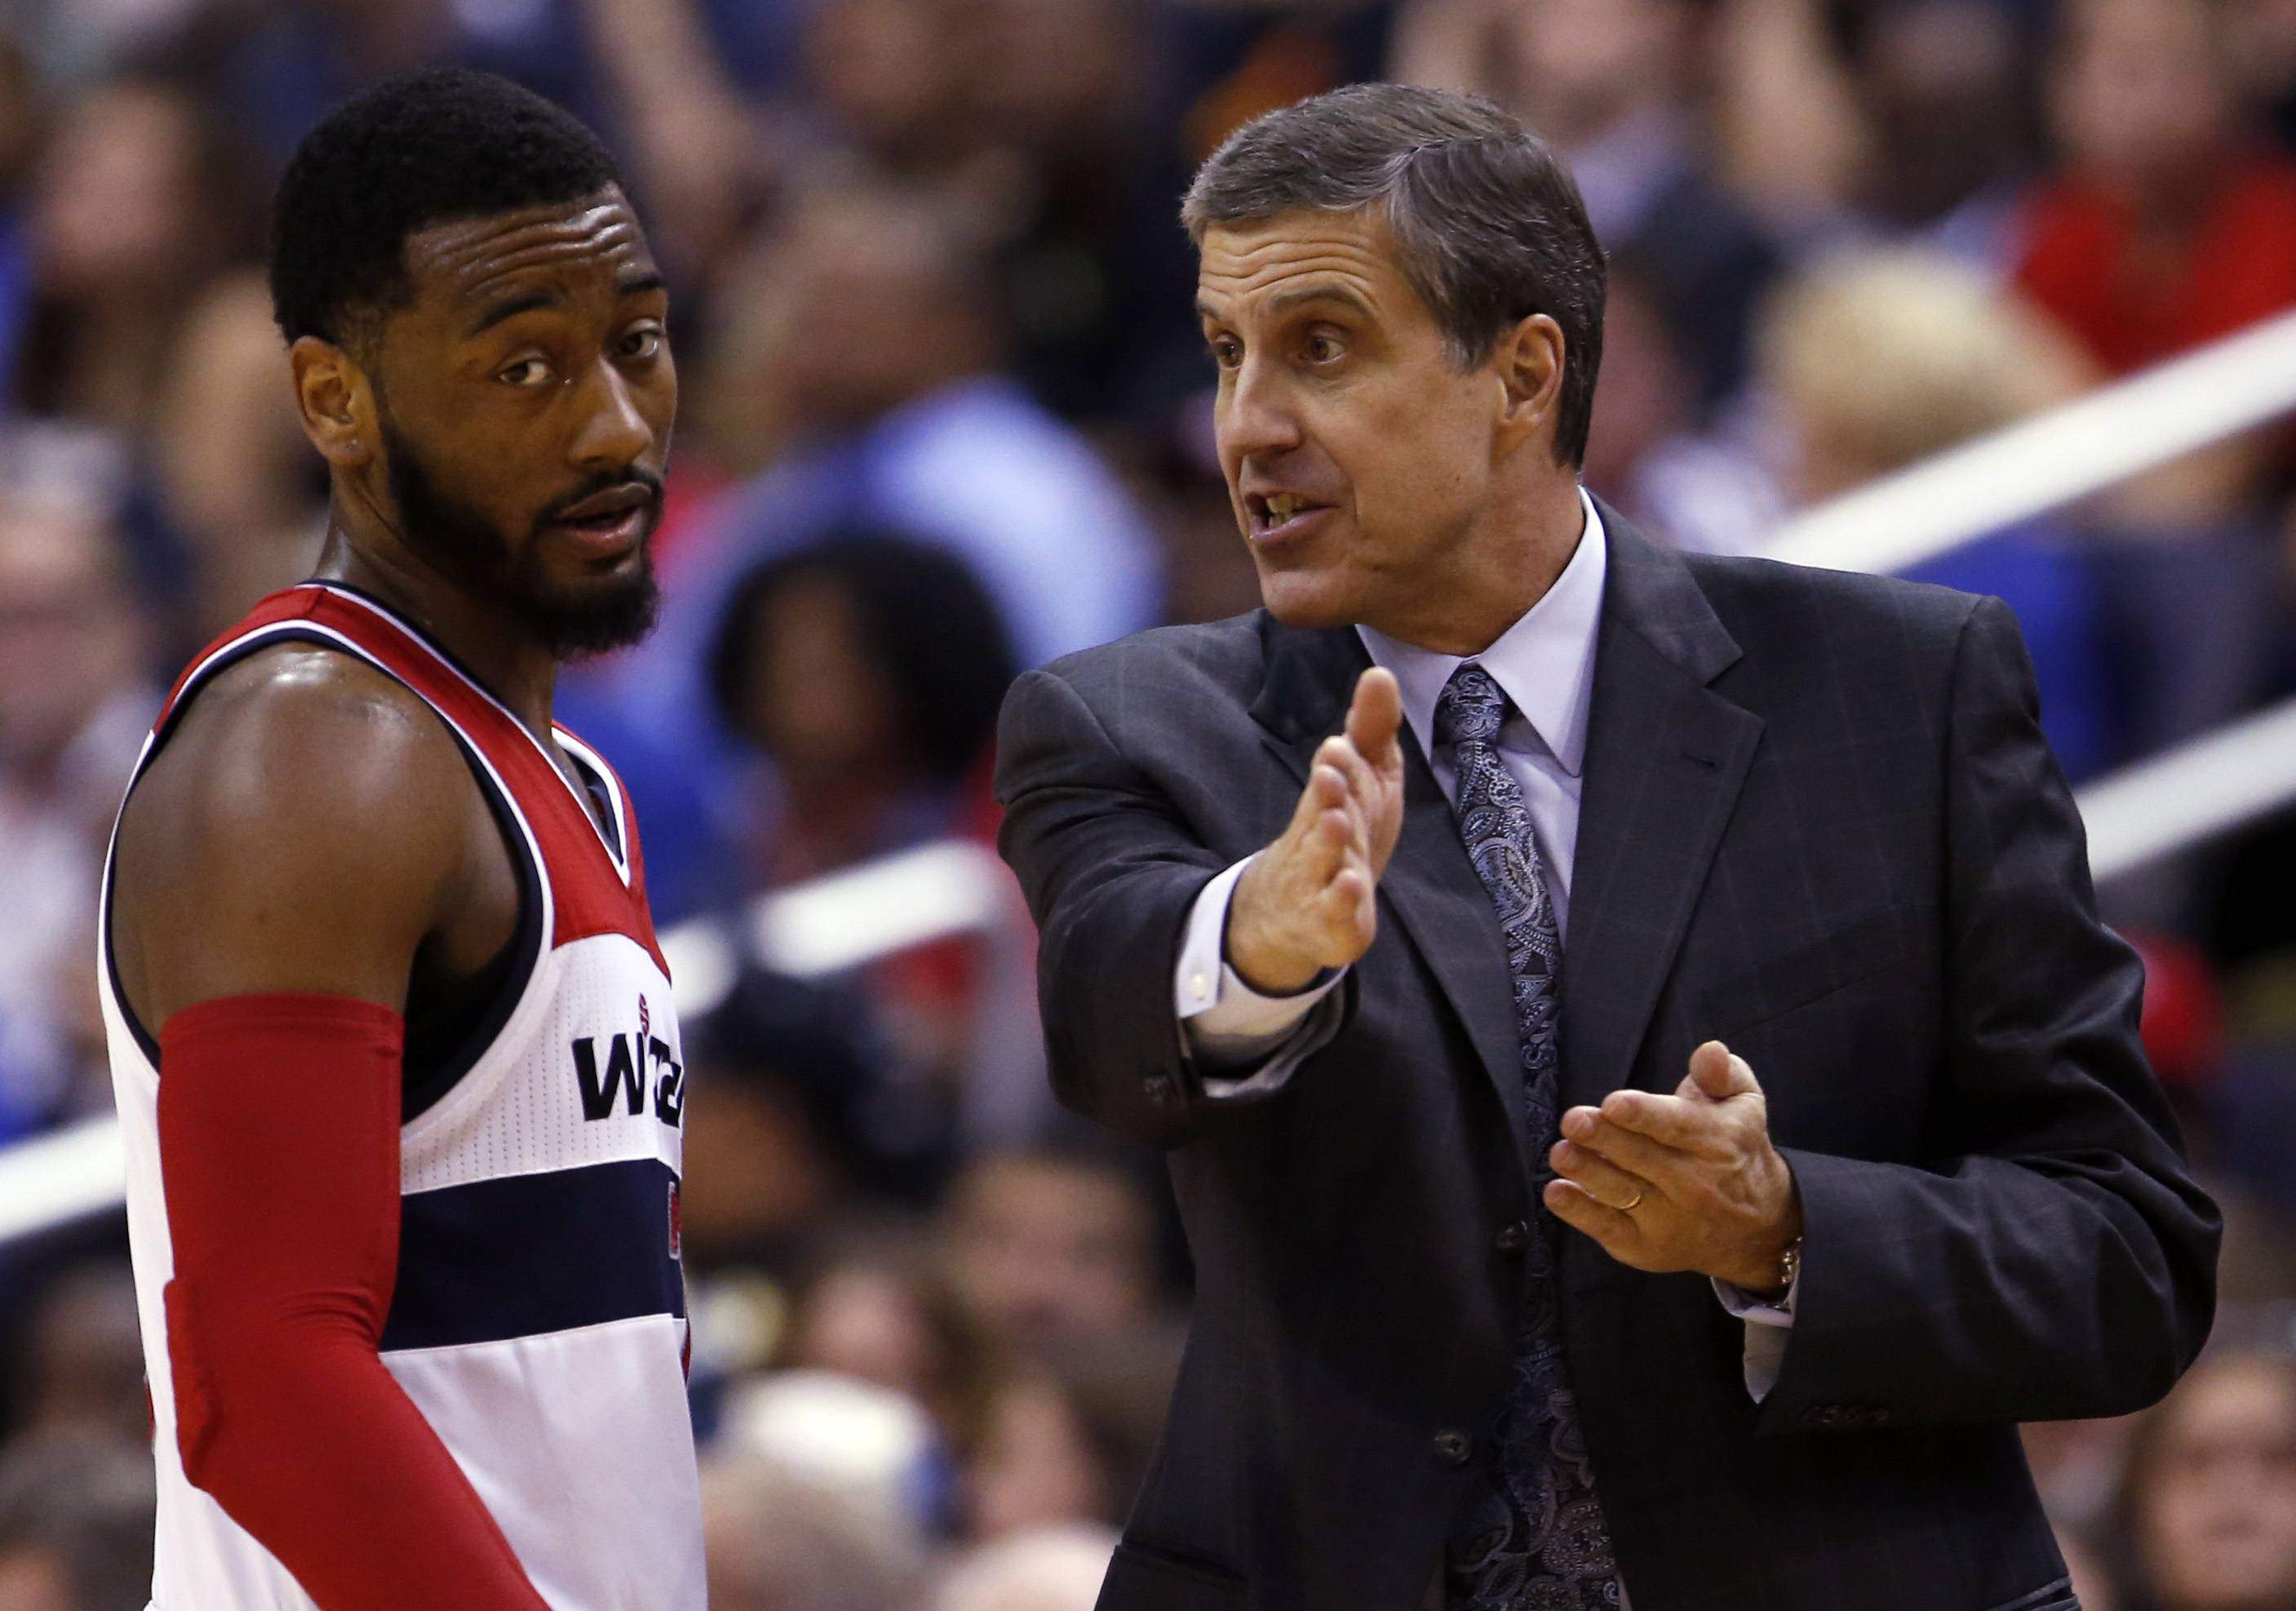 Washington Wizards guard John Wall listens to head coach Randy Wittman in a game against the Heat on April 14. Wall is averaging a team-best 19.3 points and 8.8 assists per game.